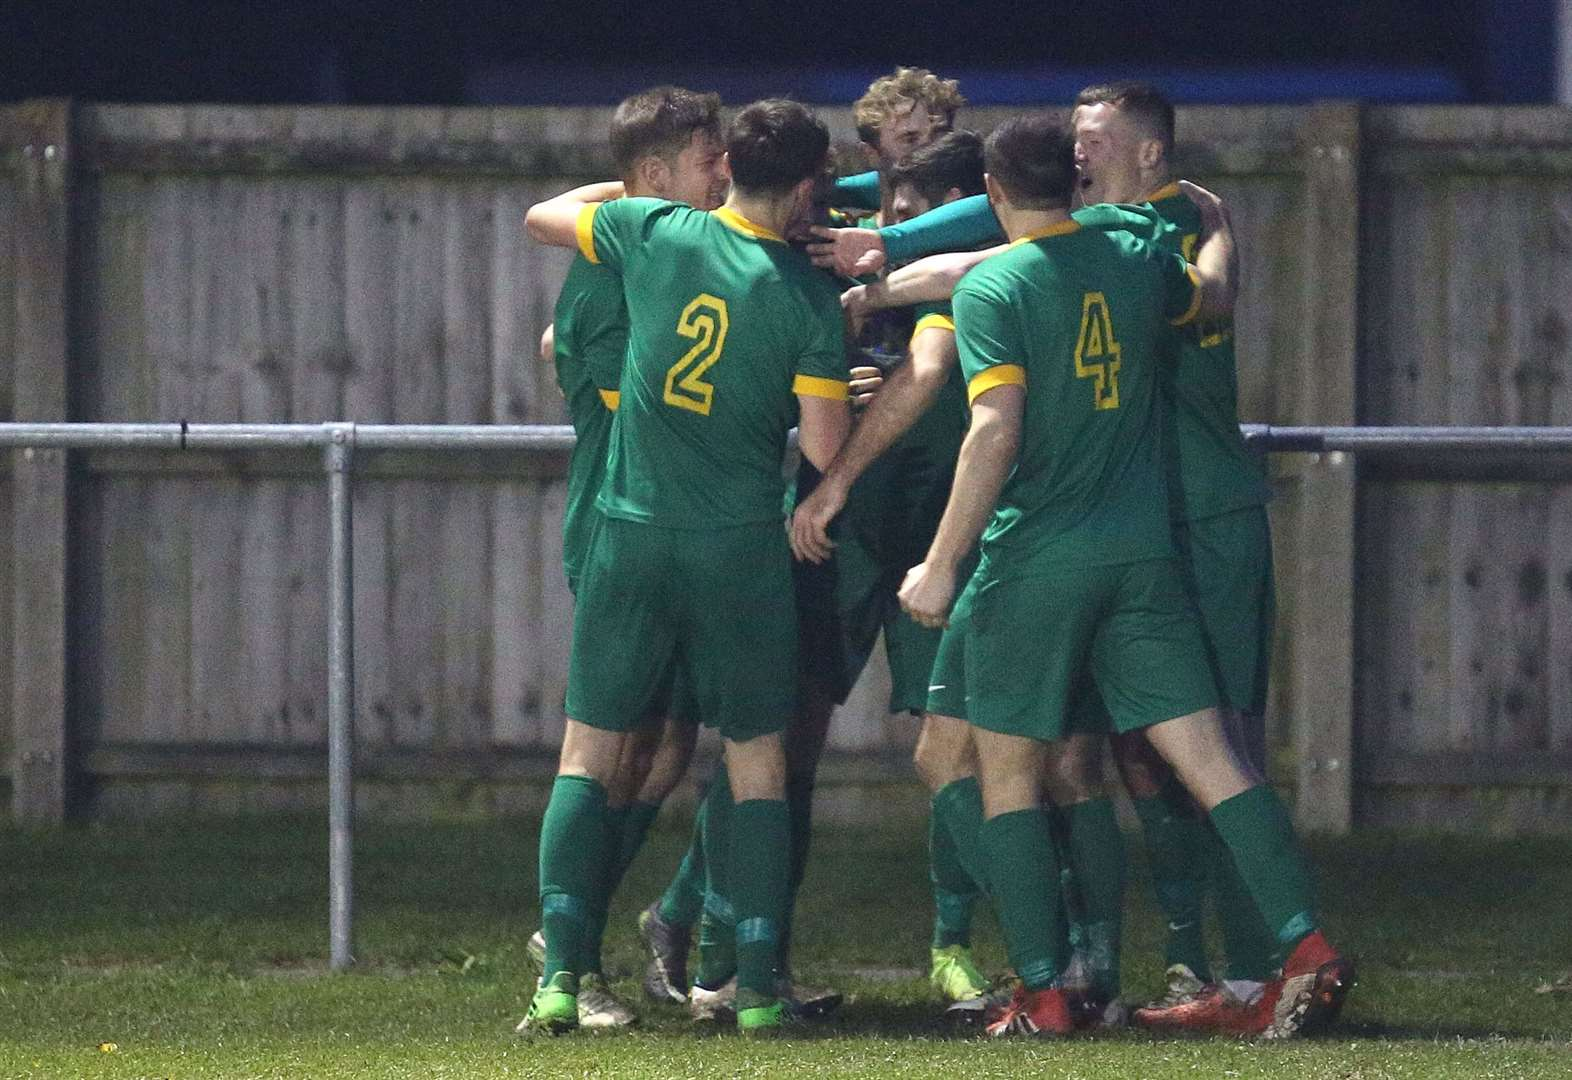 VIDEO: Saturday's local football round-up: Jockeys win thriller